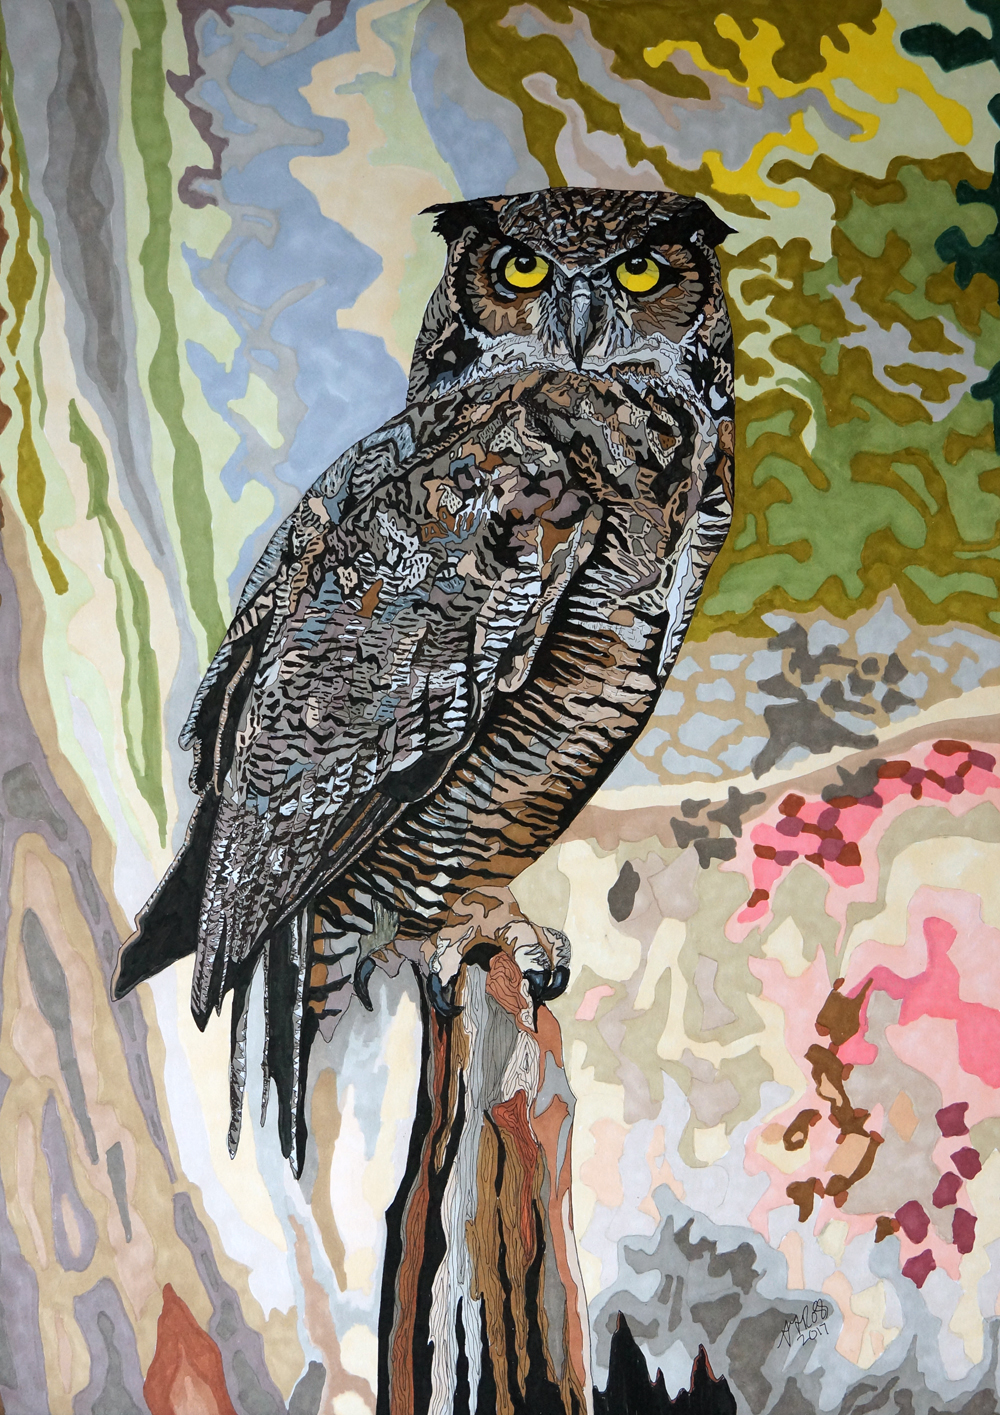 Eagle Owl 2 by Sharon T Ross 2017 pen and Ink on 250gsm paper 55x40cm 4